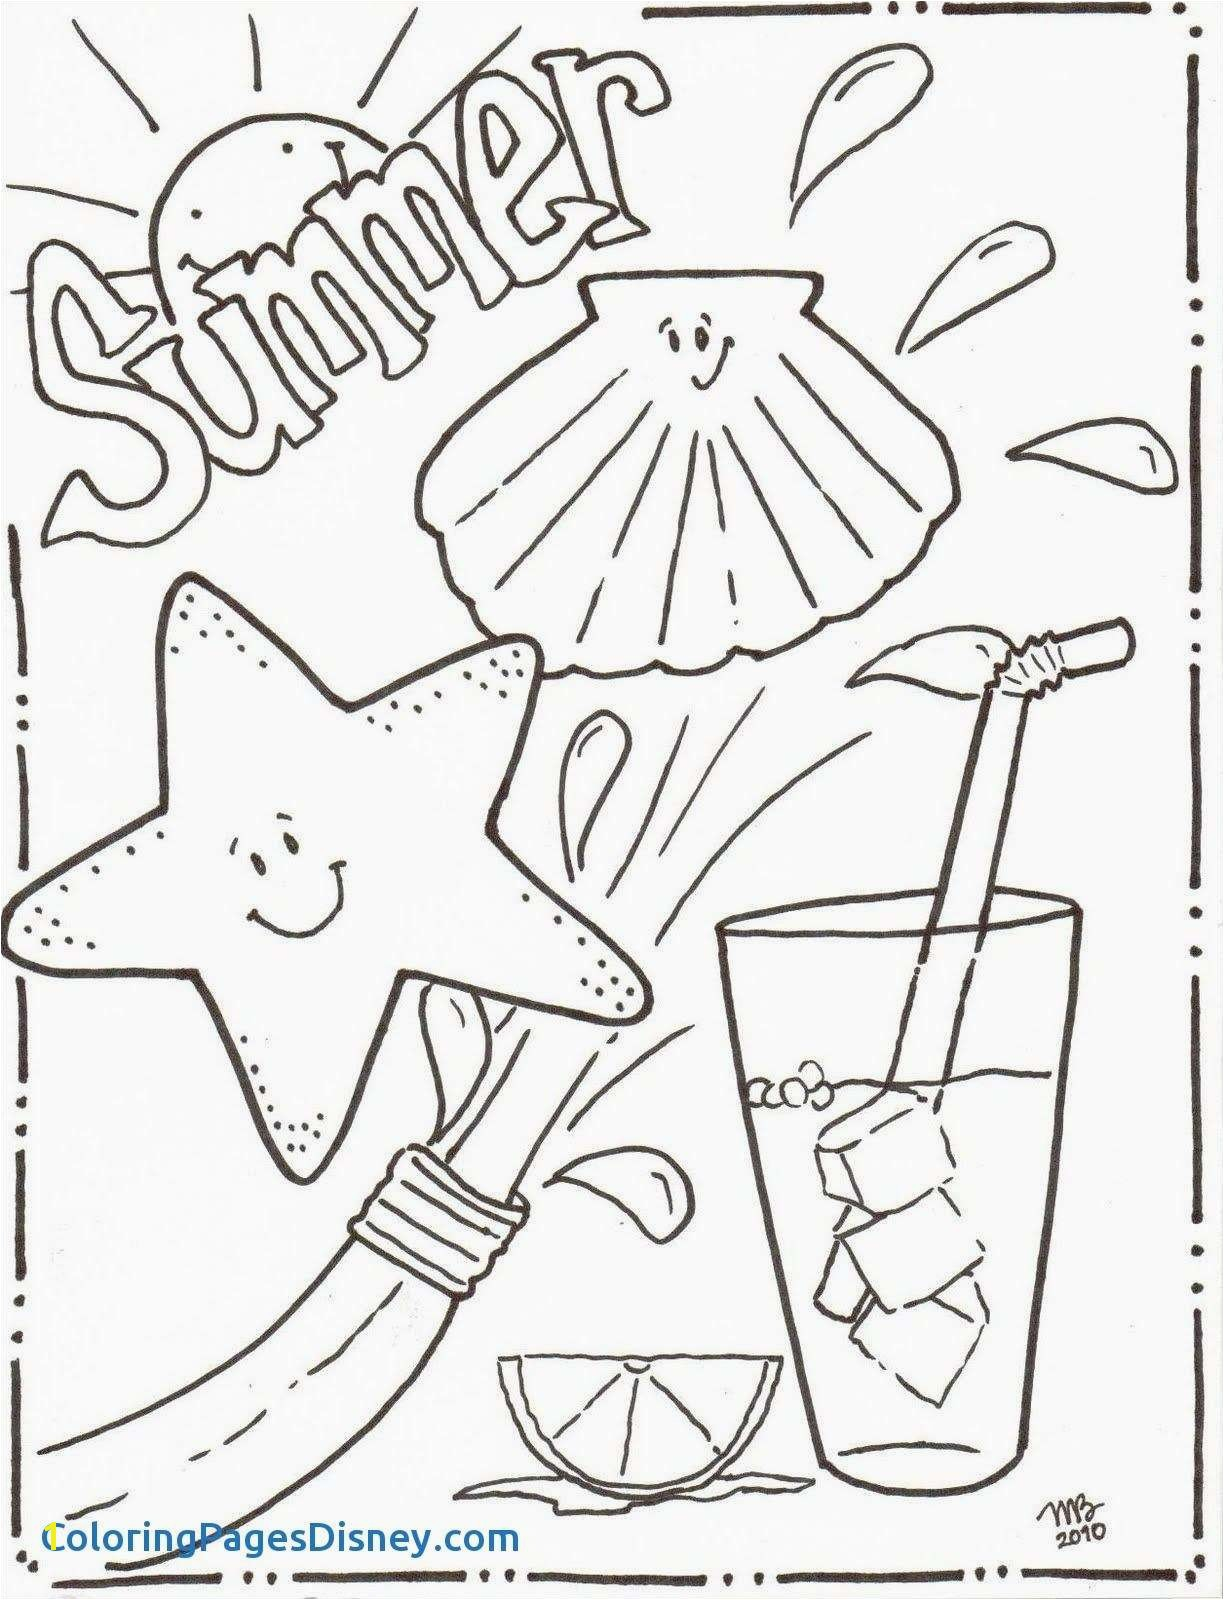 Coloring Pages Abc S Print Awesome Abc Coloring Pages Games Katesgrove